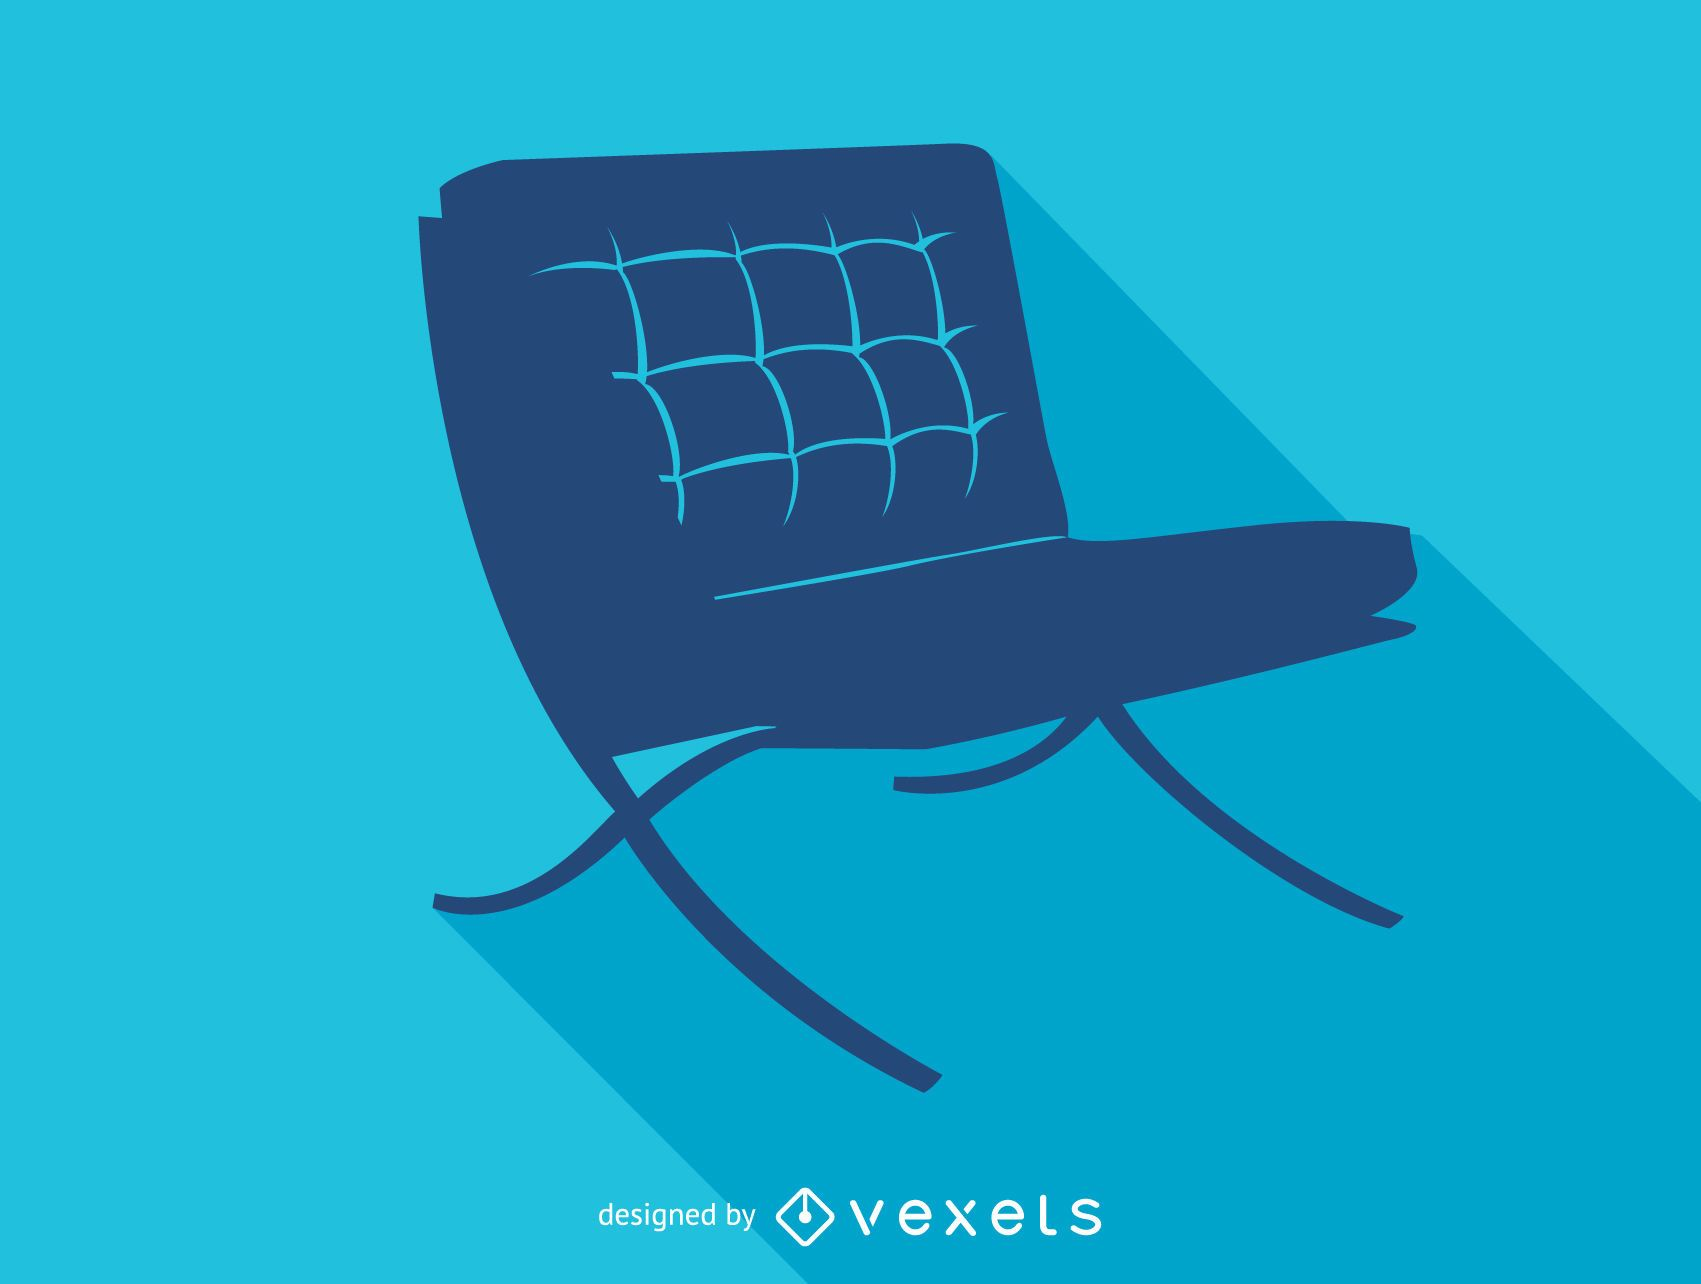 Barcelona chair silhouette icon